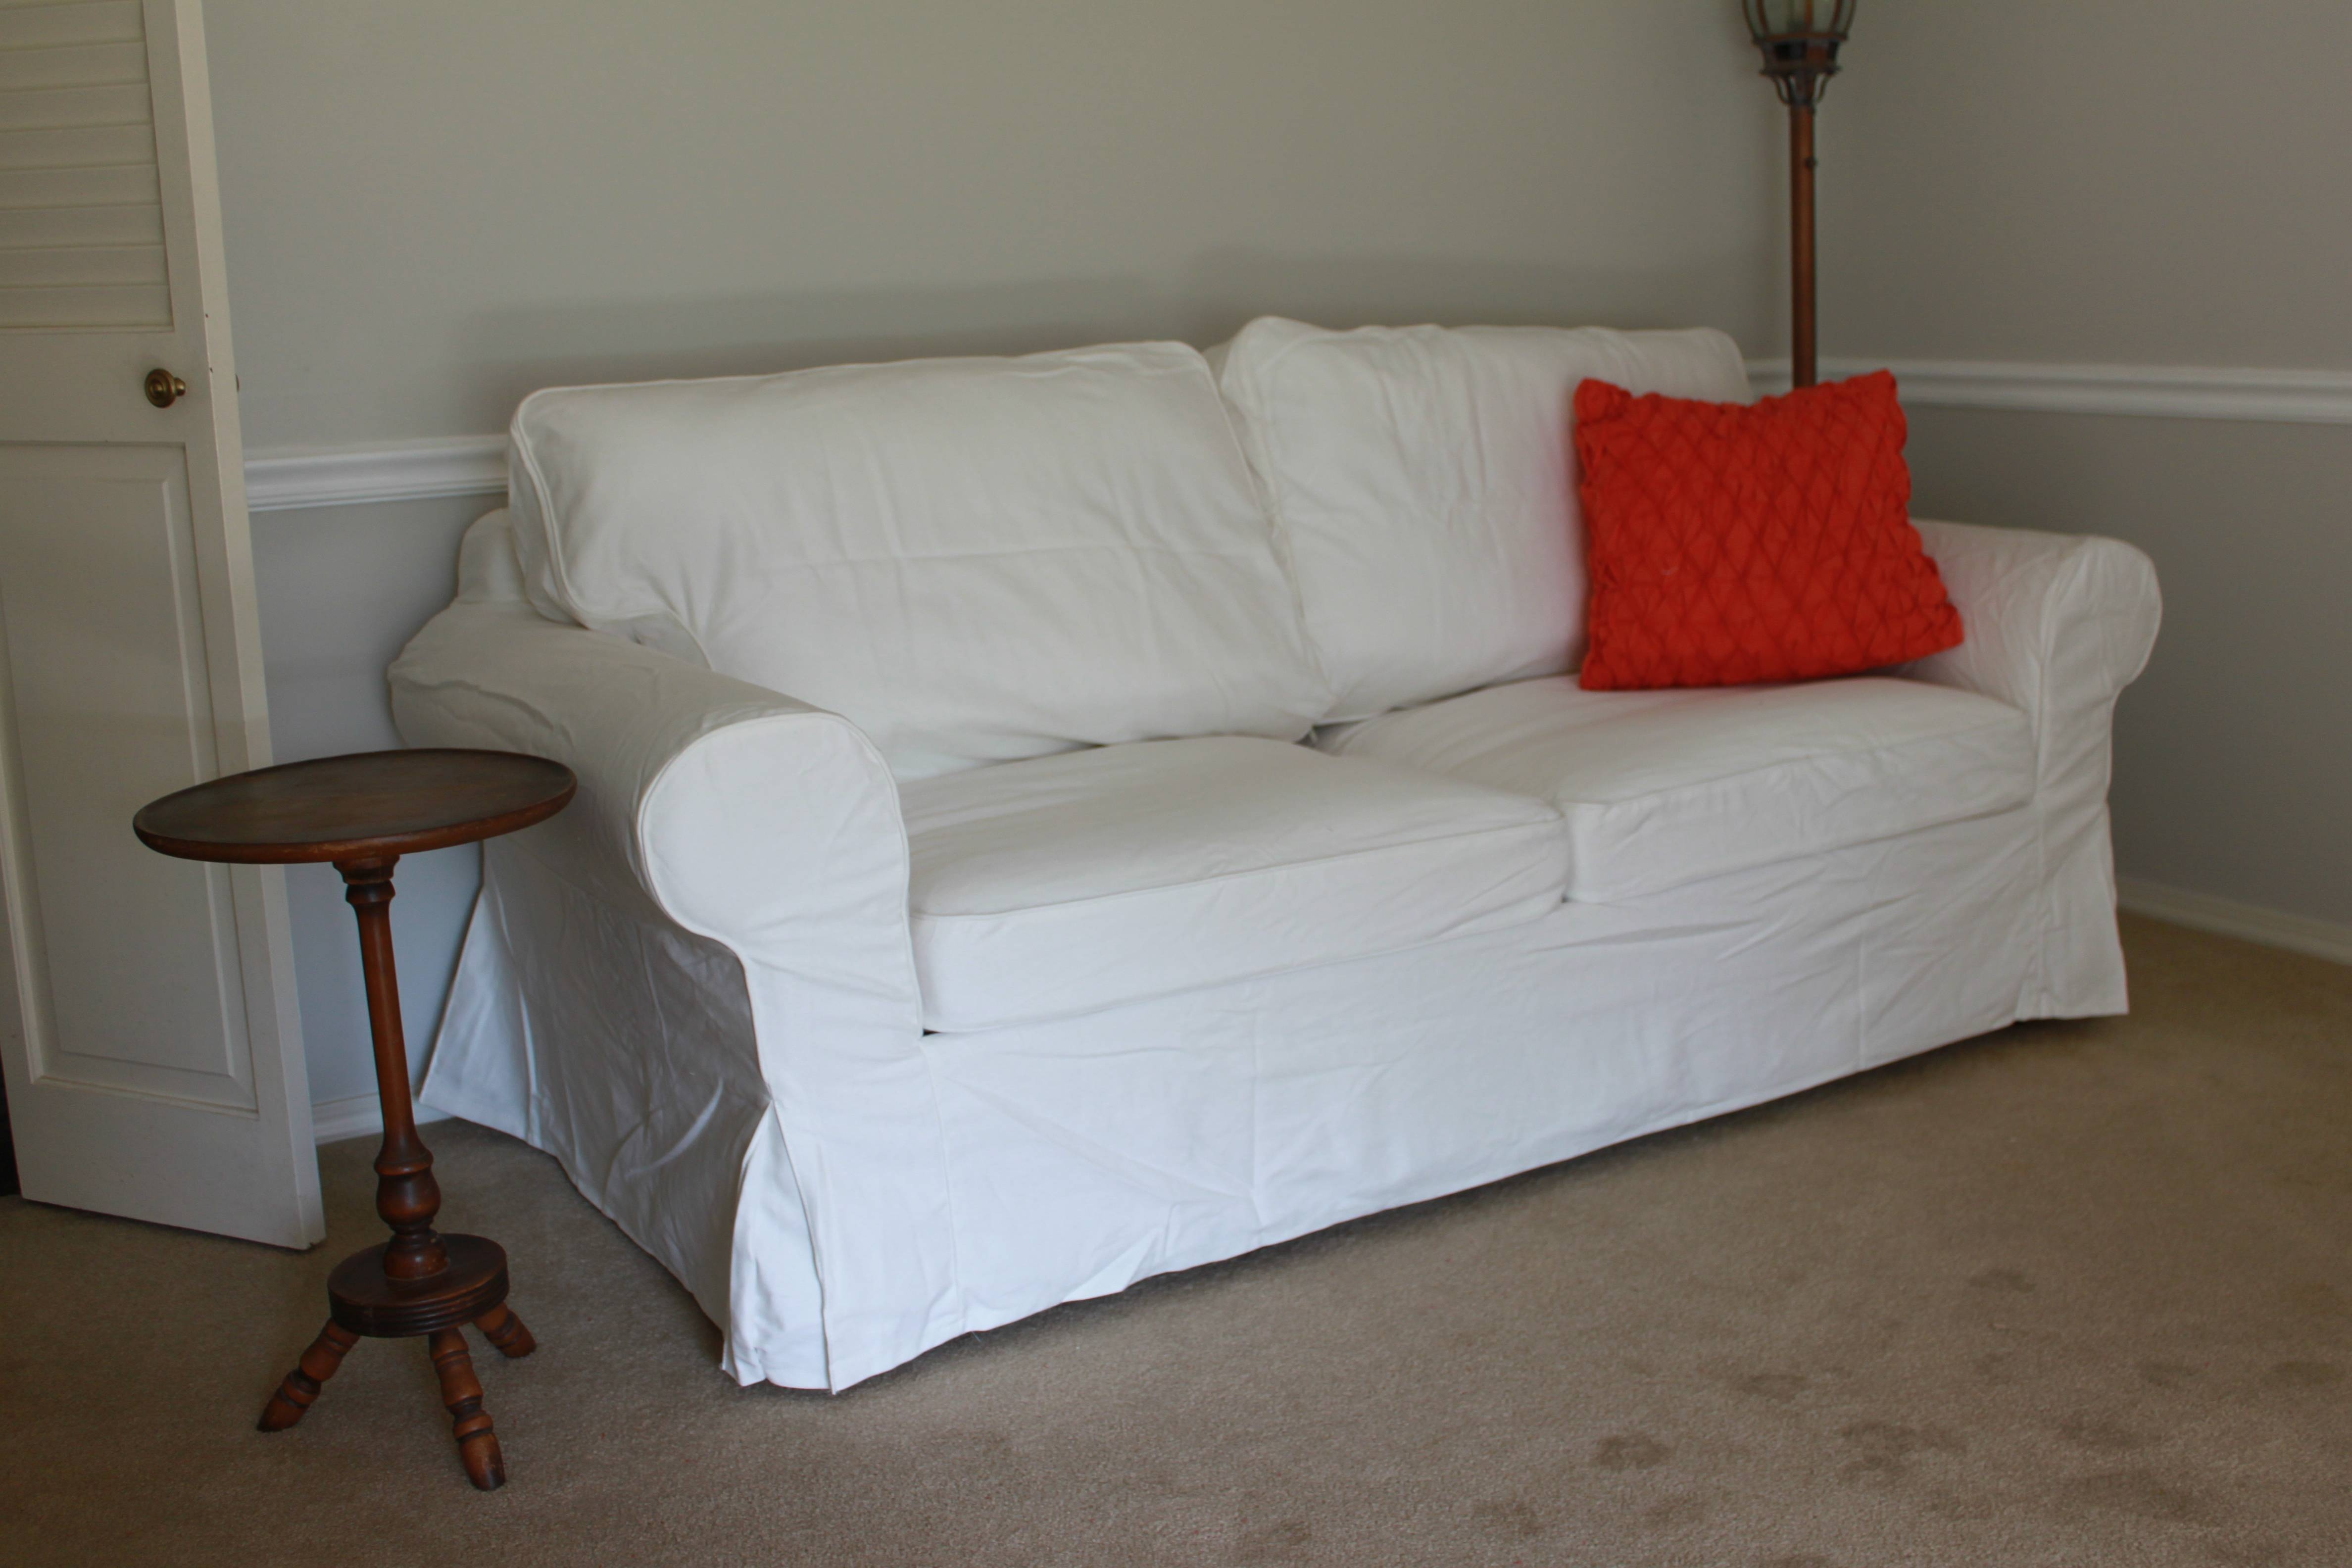 Washing Ektorp Sofas And Finding The Missing Cover | All Things regarding Sleeper Sofa Slipcovers (Image 15 of 15)